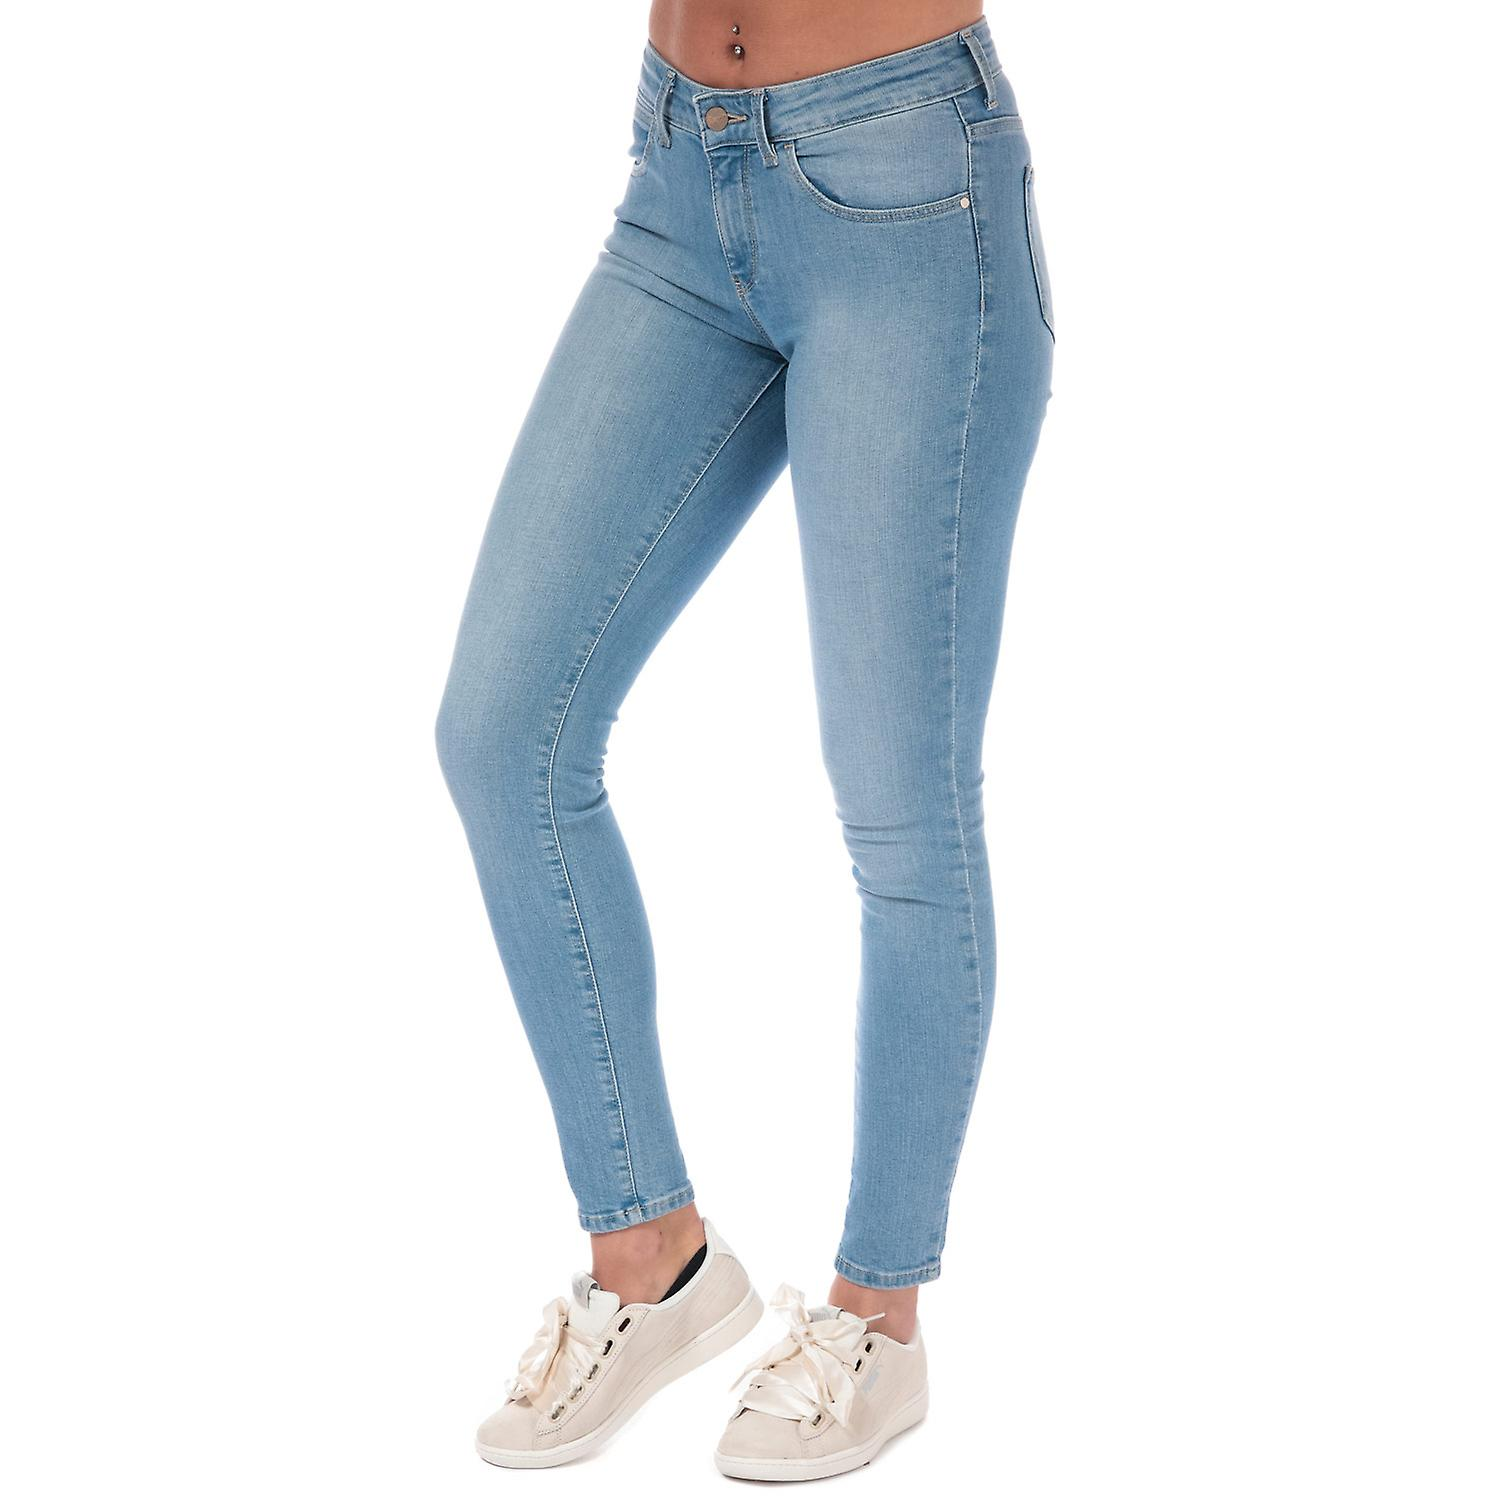 Womens Wrangler Body Bespoke Skinny Jeans In Blue Light